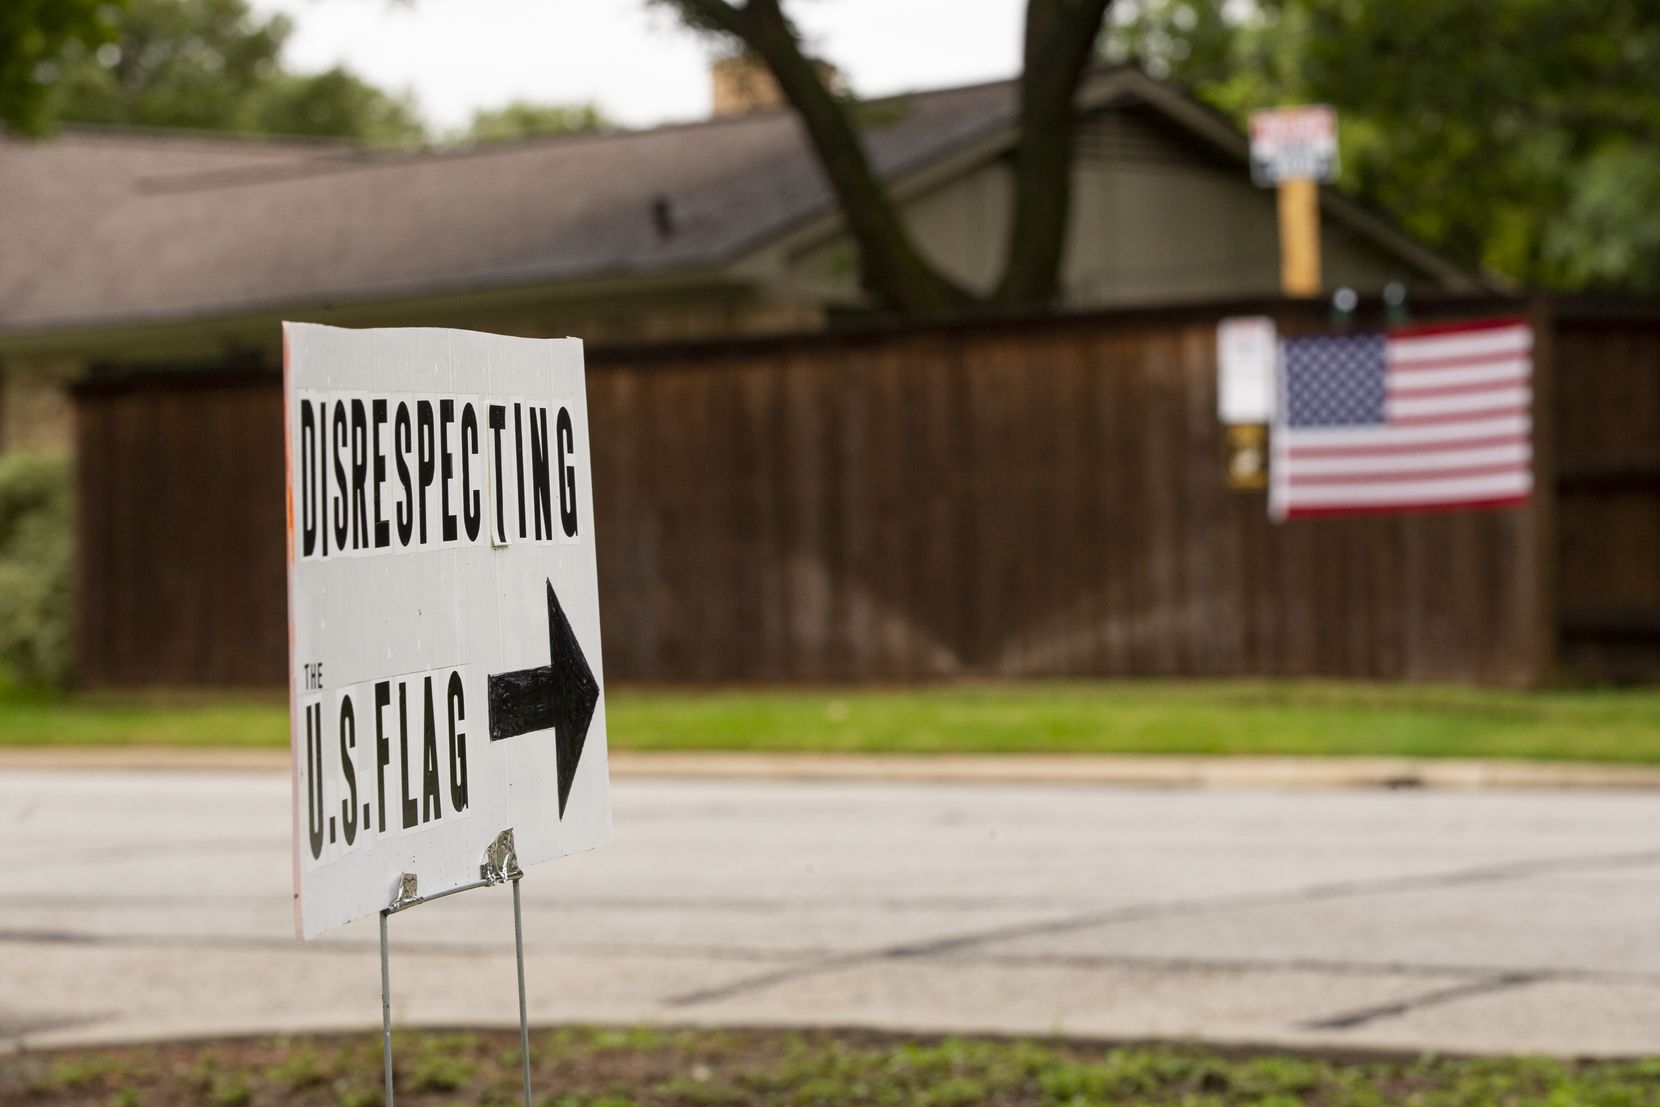 A sign outside of Brenda Drevicky's home points to her neighbor's signs on Sept. 10, 2020 in Farmers Branch. Drevicky put the sign up because she said her neighbor is not following the U.S. flag code. (Juan Figueroa/ The Dallas Morning News)